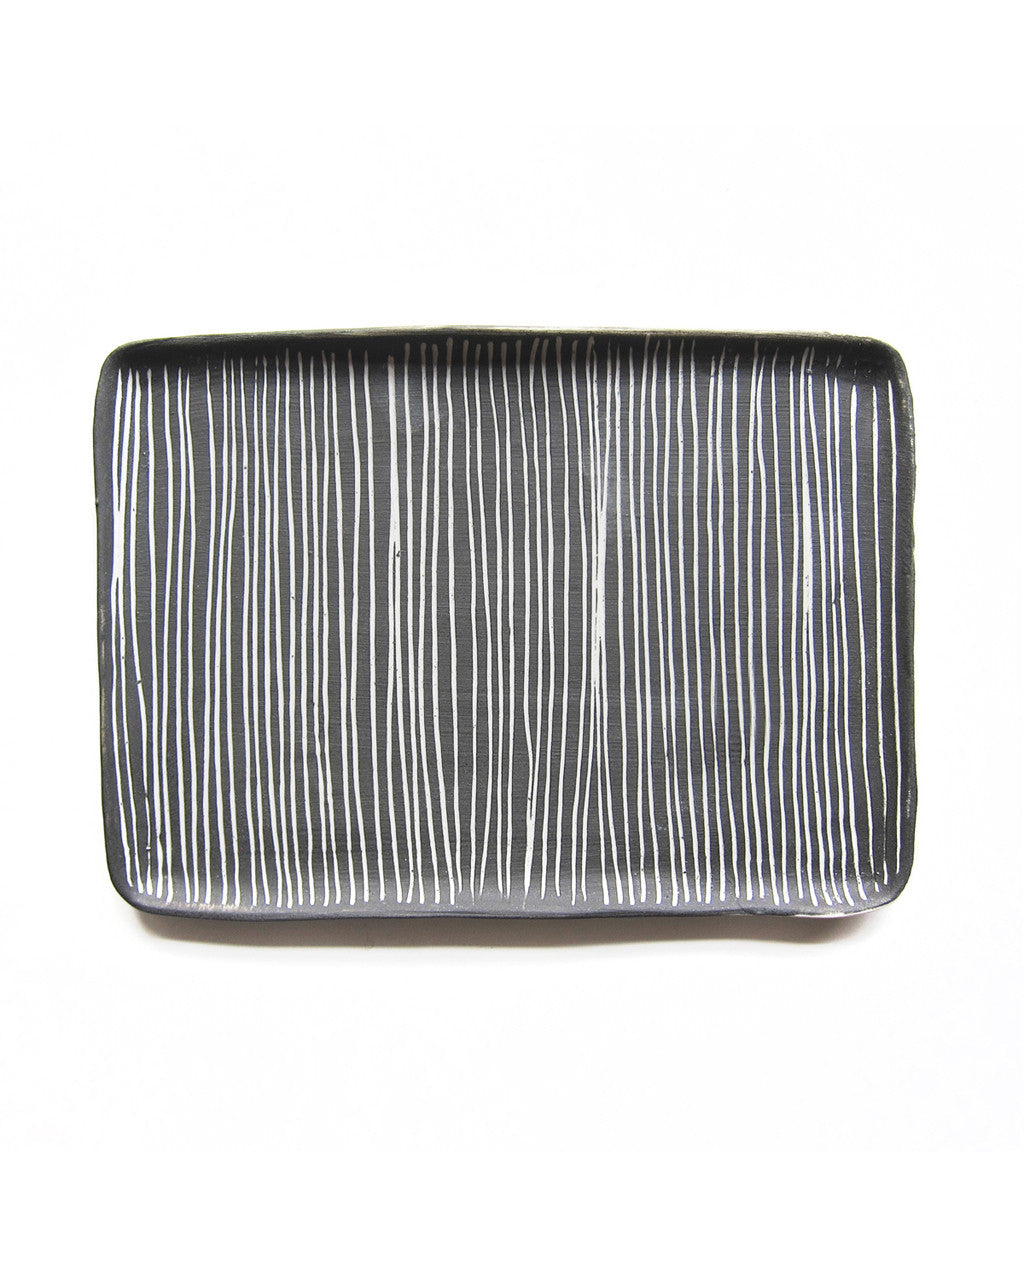 white leather serving tray Gray White Striped Serving Tray